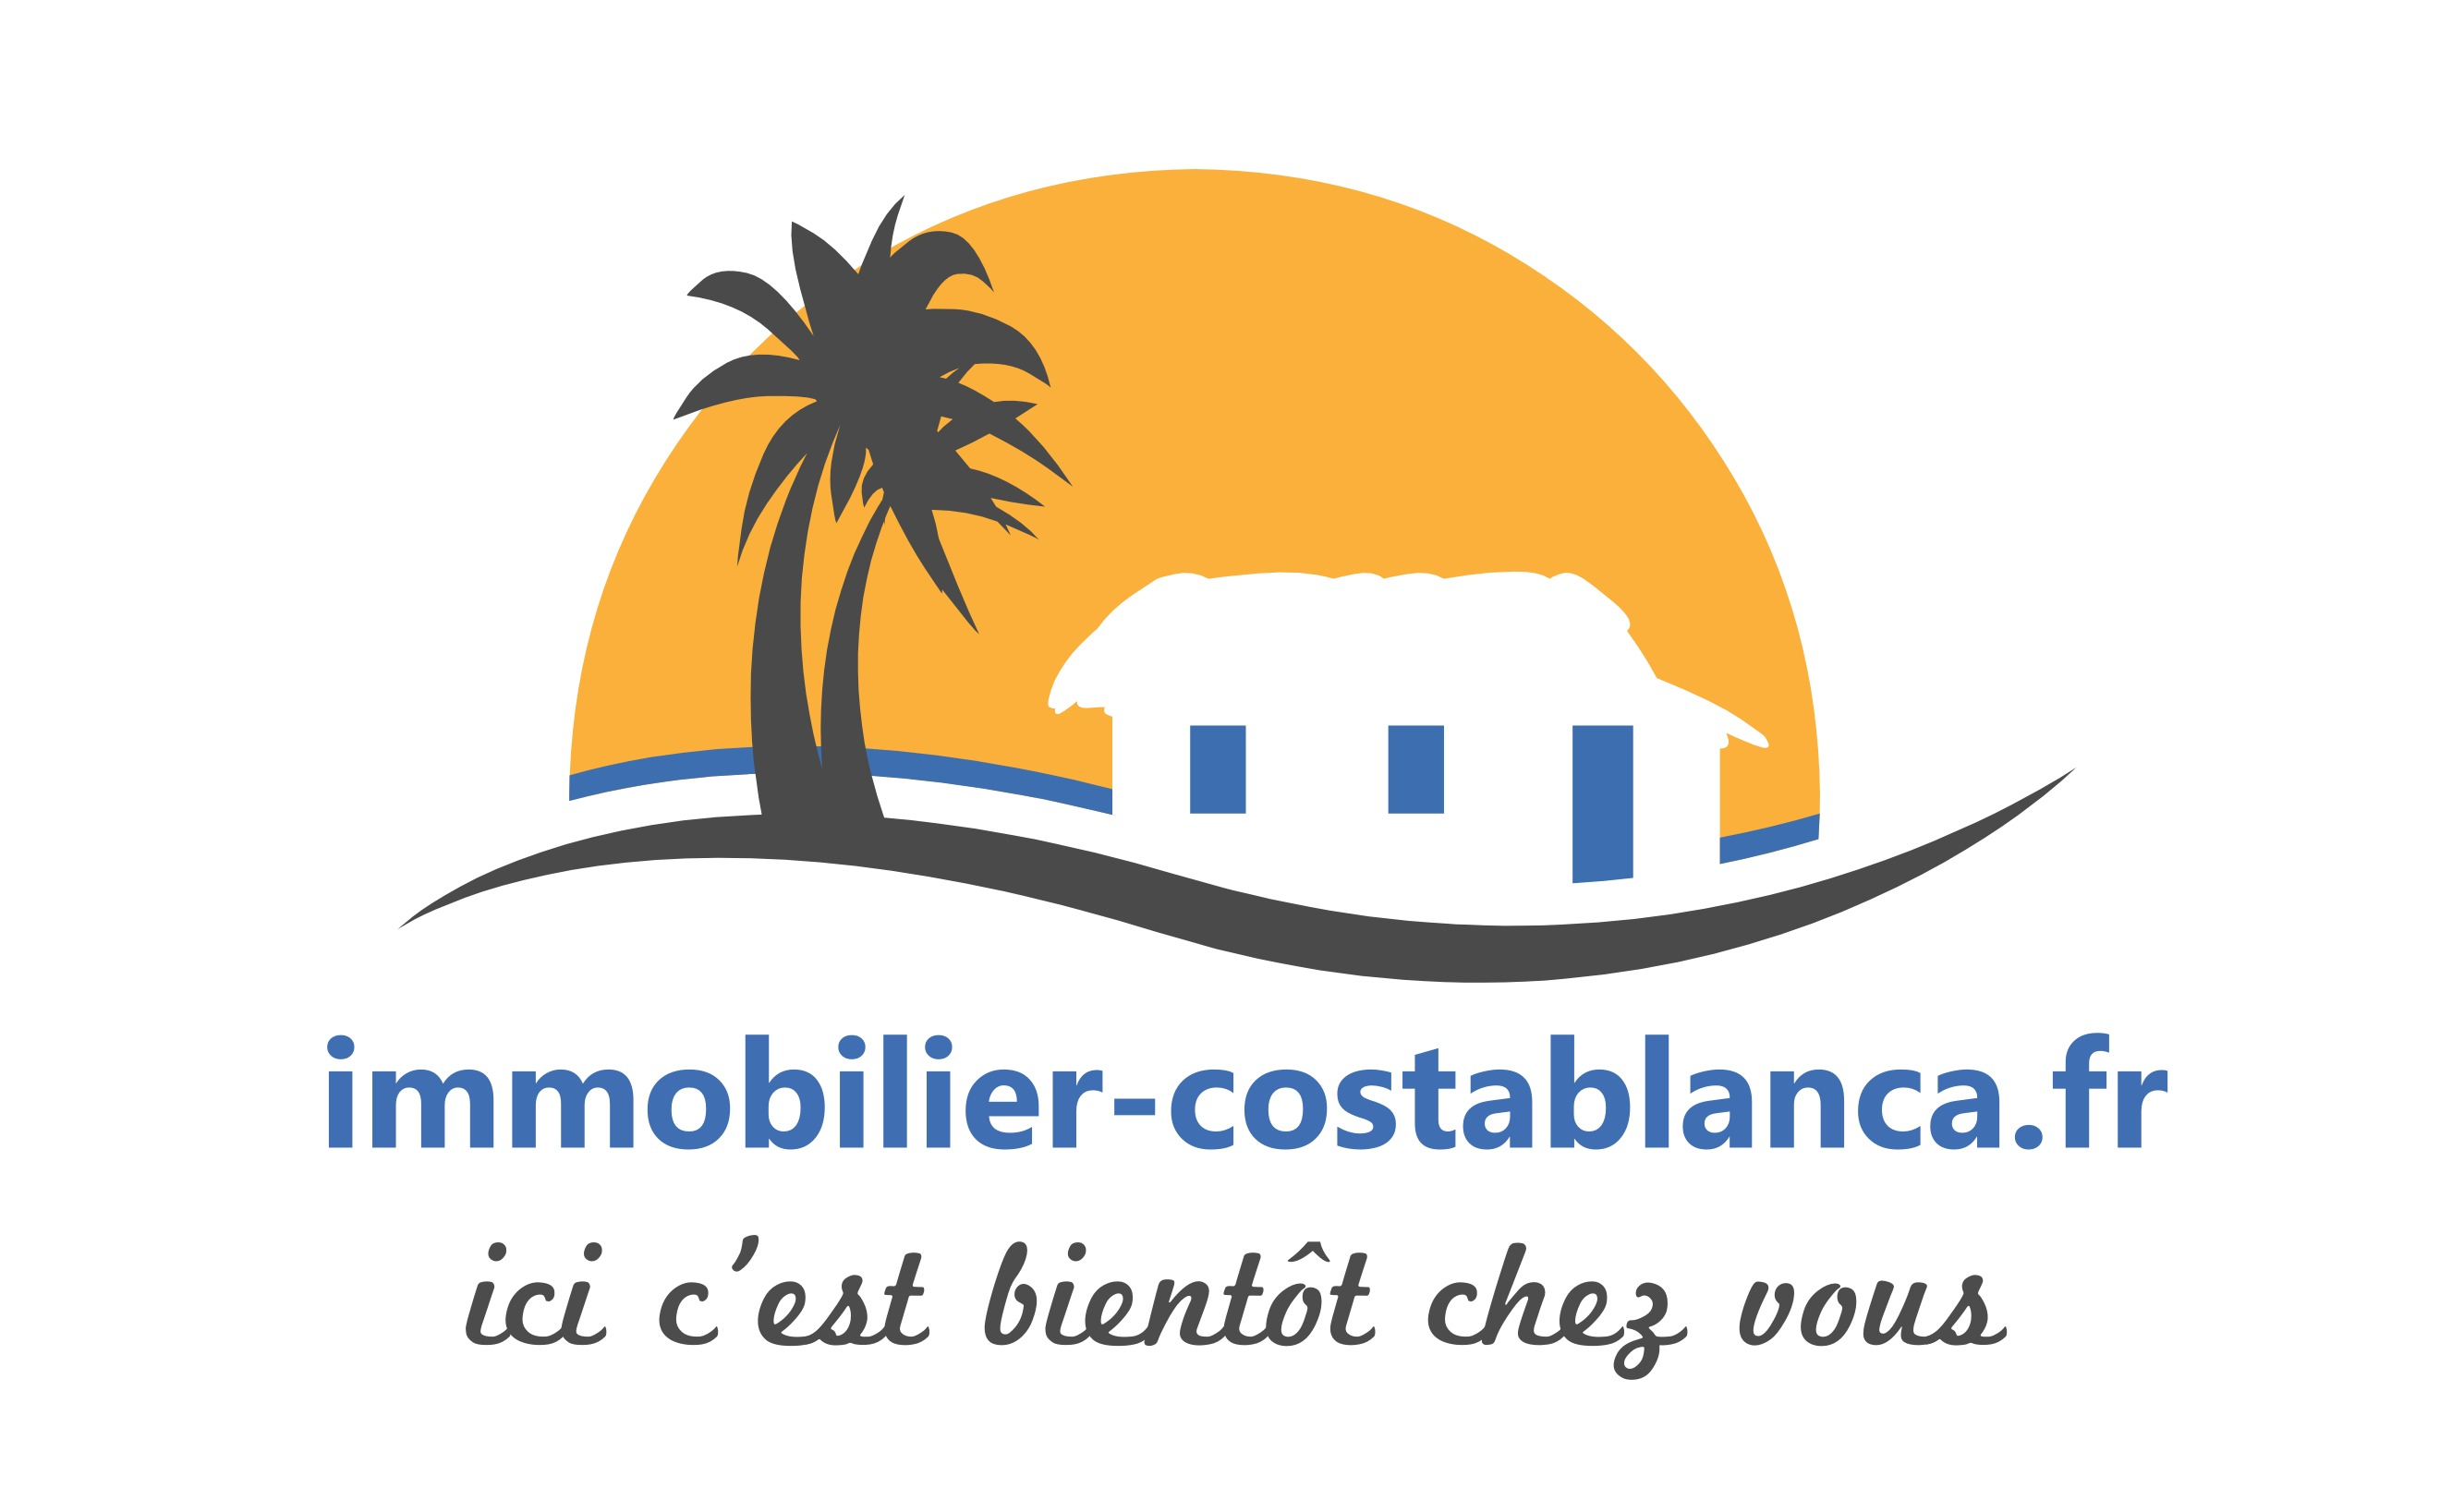 IMMOBILIER - COSTABLANCA.FR